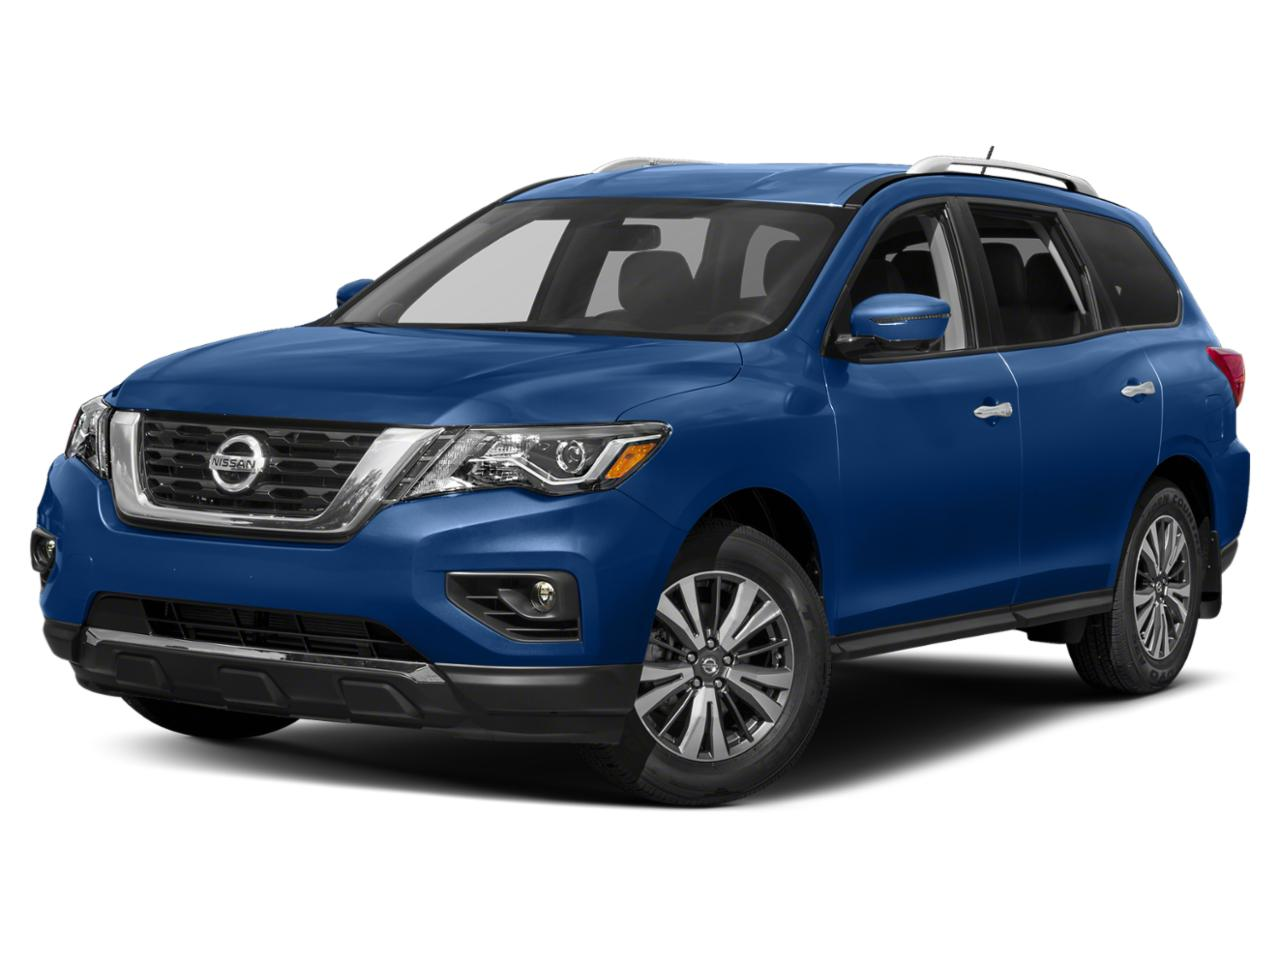 2020 Nissan Pathfinder Vehicle Photo in Owensboro, KY 42303